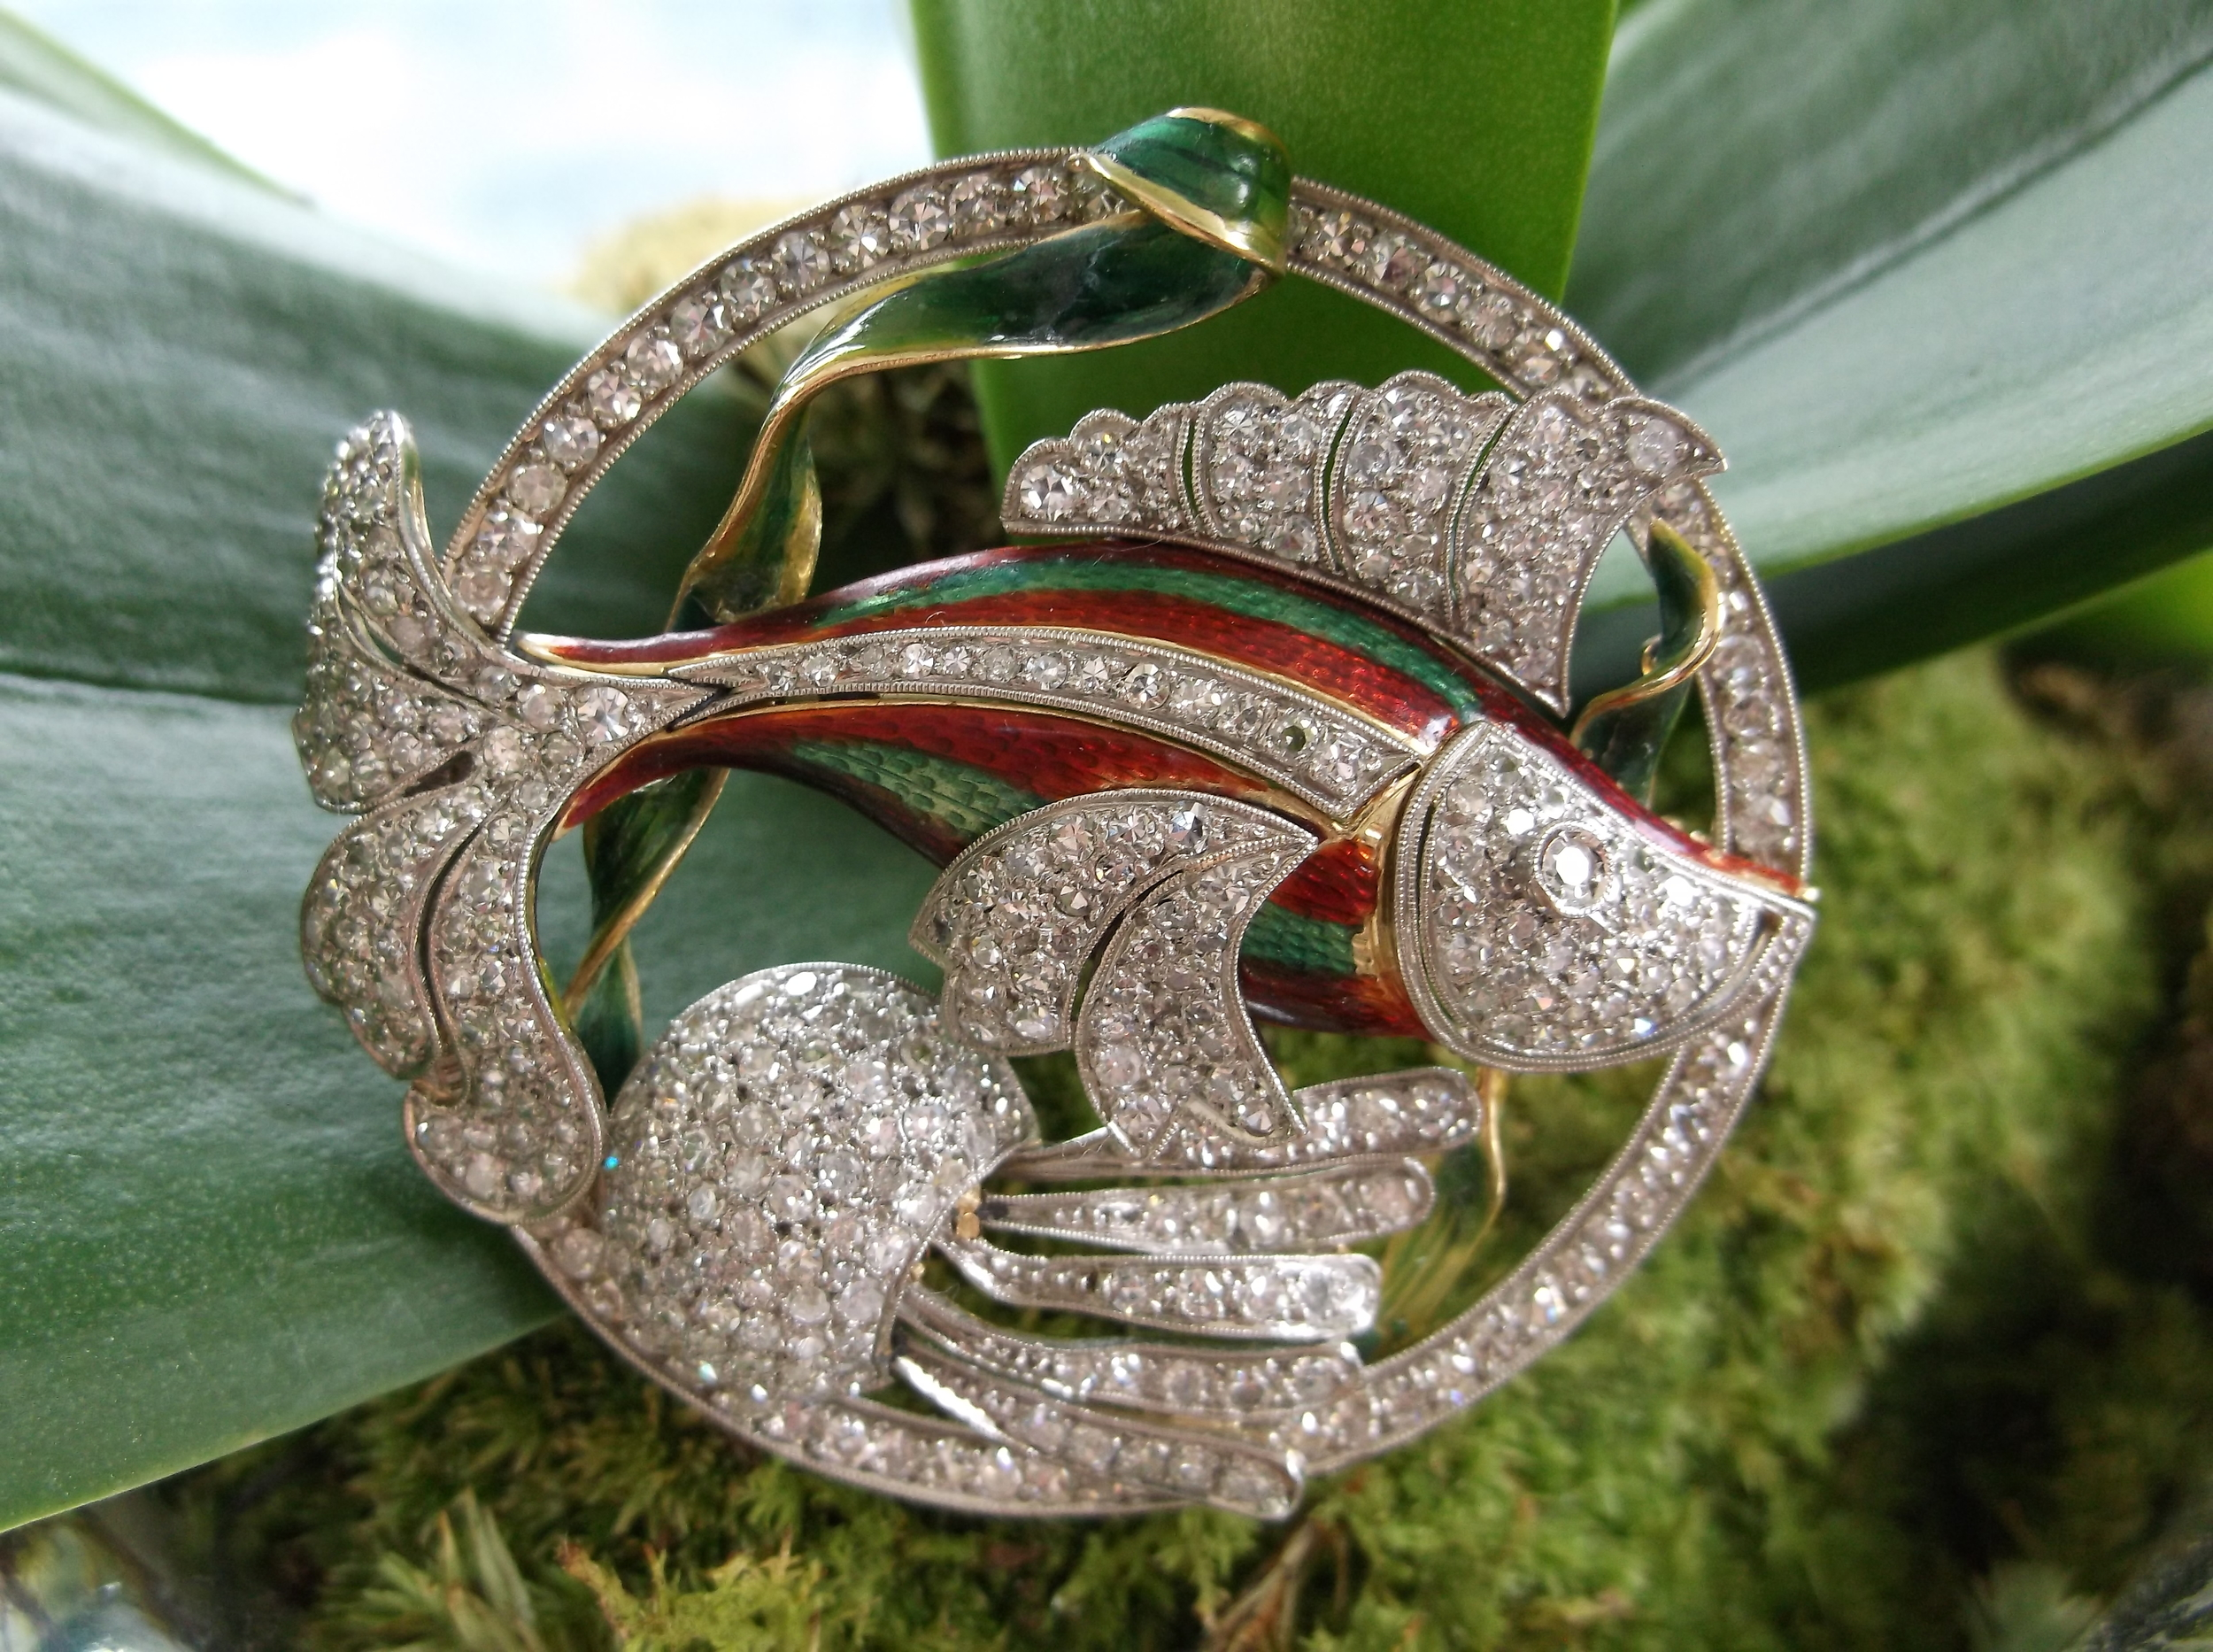 SOLD - Gorgeous 1920's diamond and enamel, platinum on gold fish broach with 2.50 carats total weight in diamonds!